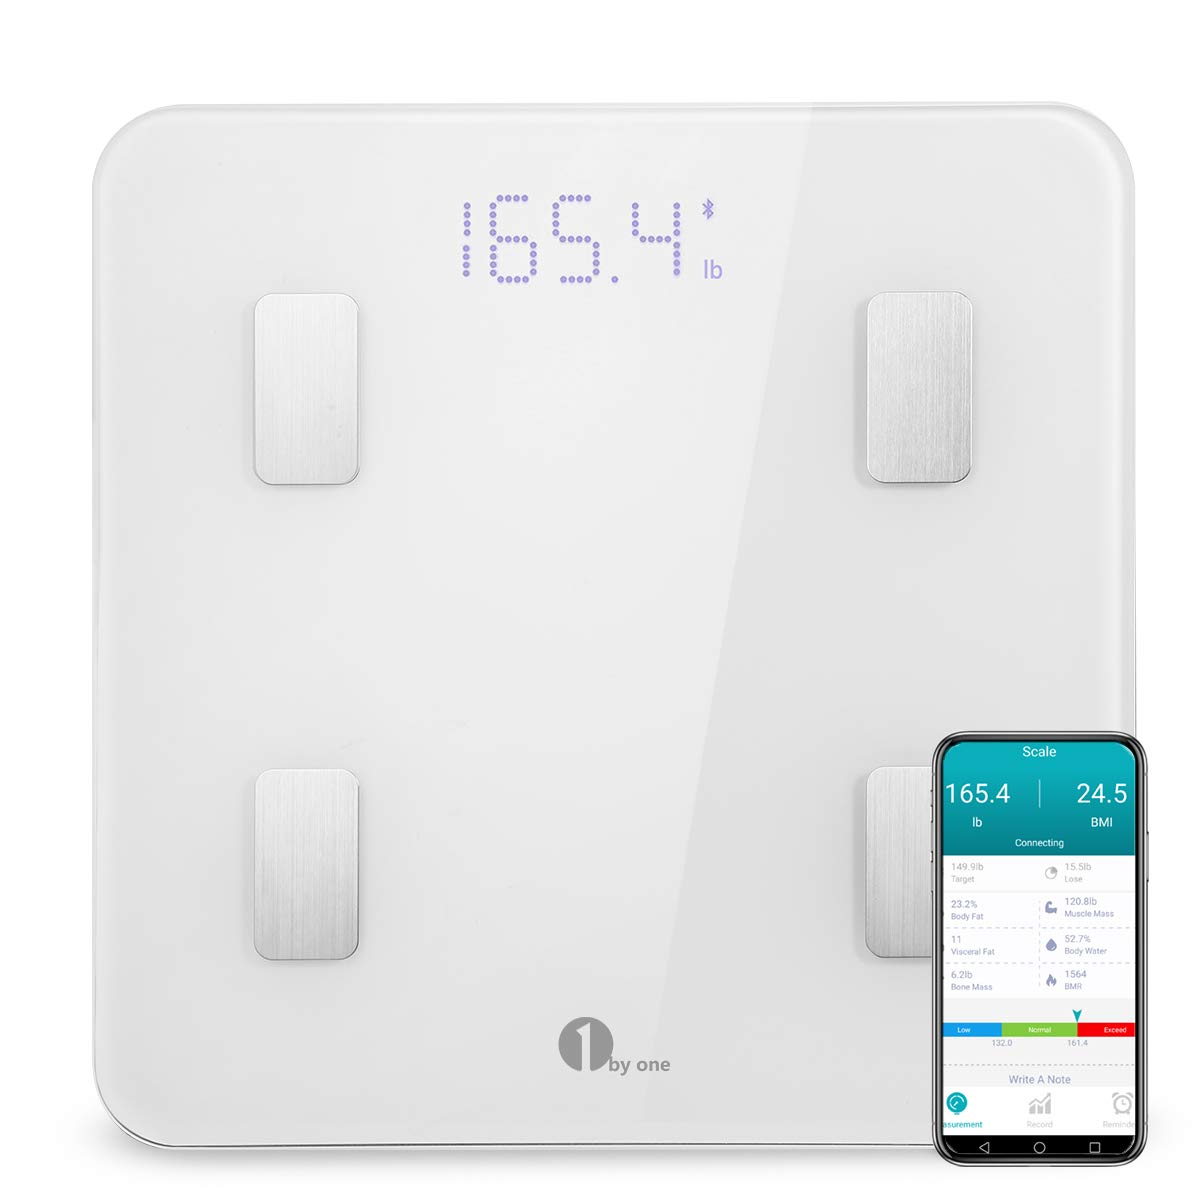 Amazon.com: 1byone Bluetooth Body Fat Scale with Manage App, Smart Wireless Digital Bathroom Scale for Body Weight, Body Fat, Water, Muscle Mass, BMI, BMR, ...